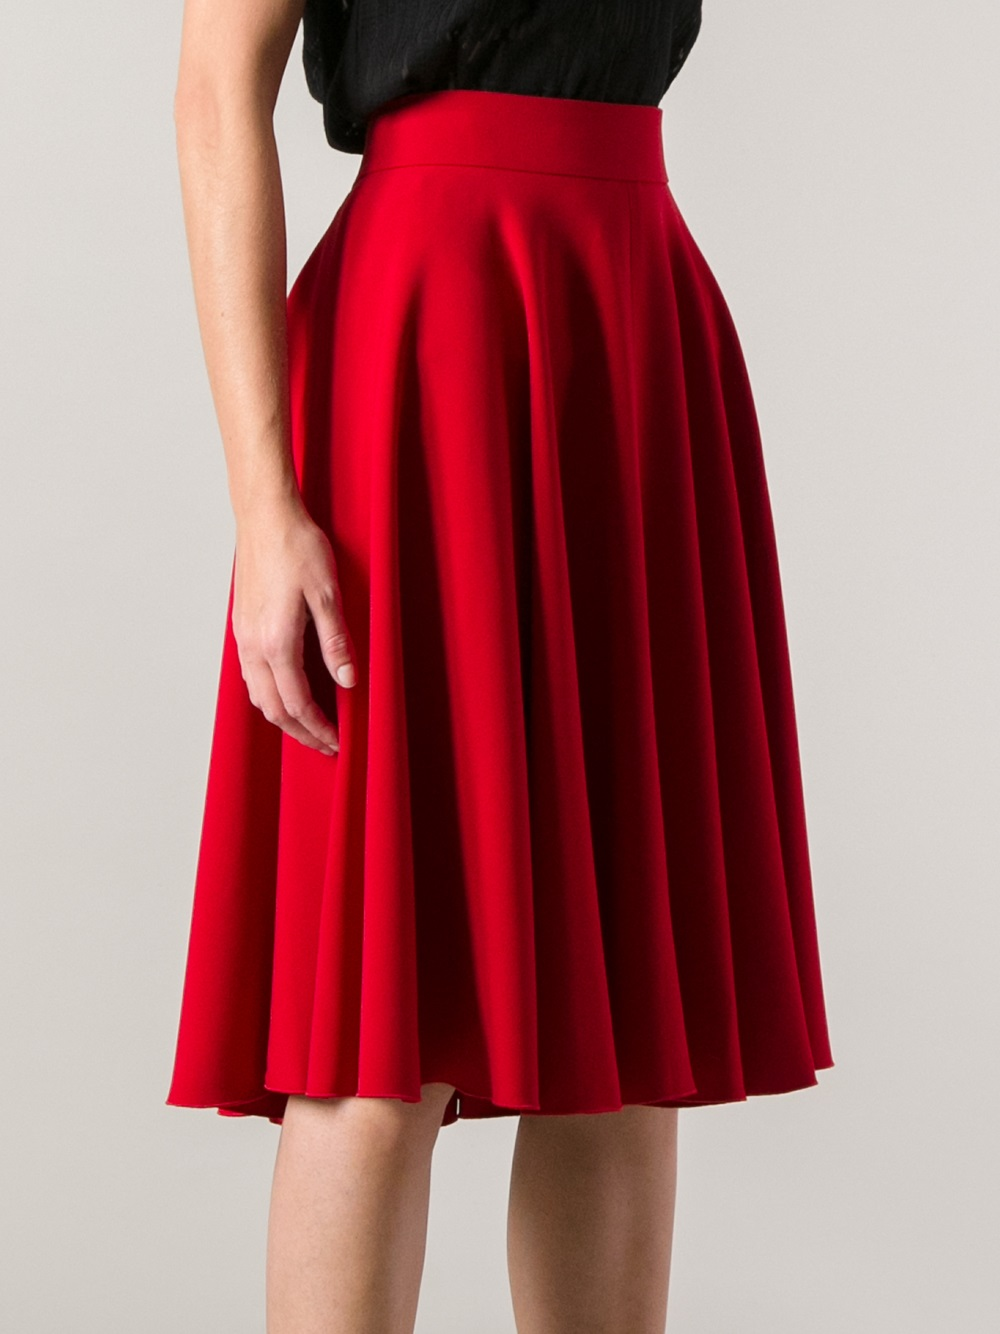 HOME/ RED SKIRT. CATEGORIES. FILTER Done. Size. Color. red skirt. SORT BY. Newest Price low to high Price high to low Relevance. FILTER. Fear of missing out? Be the first to know about the latest deals, style updates & more! Sign up and be the first to know! EMAIL ADDRESS JOIN. style .